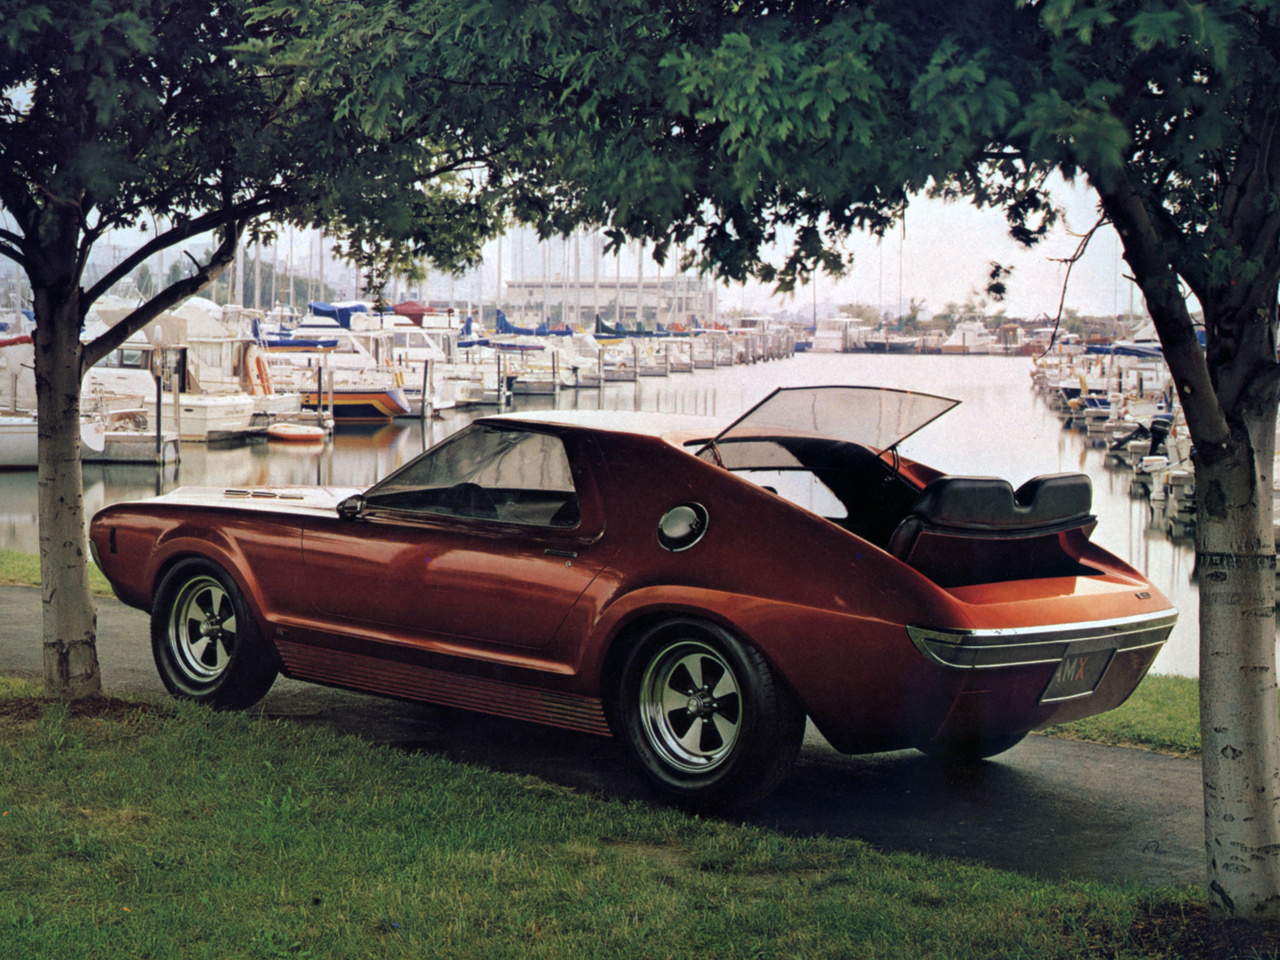 amc_amx_i_concept_car_3